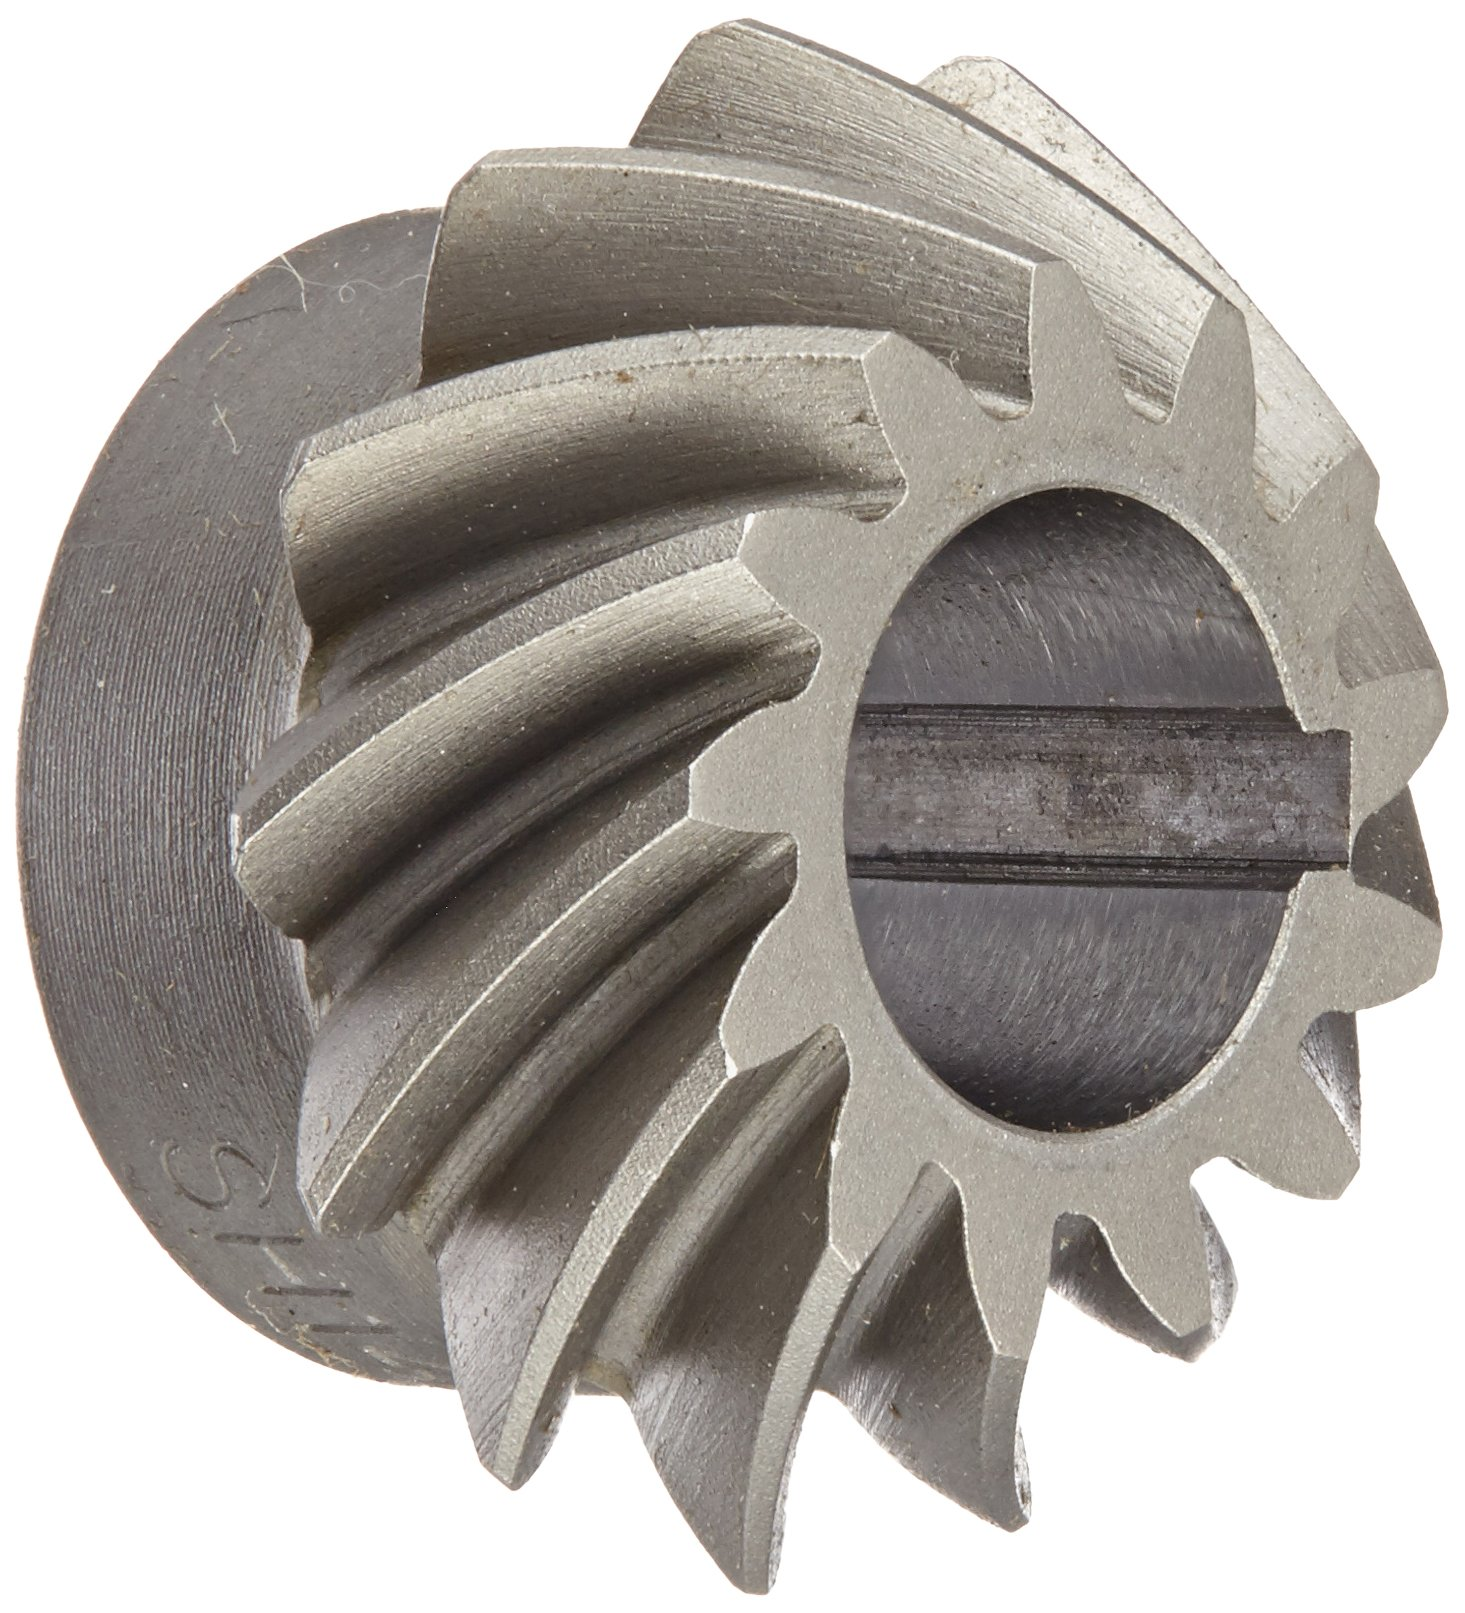 "Boston Gear SH142-P Spiral Bevel Pinion Gear, 2:1 Ratio, 0.438"" Bore, 14 Pitch, 13 Teeth, 35 Degree Spiral Angle, Keyway, Steel with Case-Hardened Teeth"